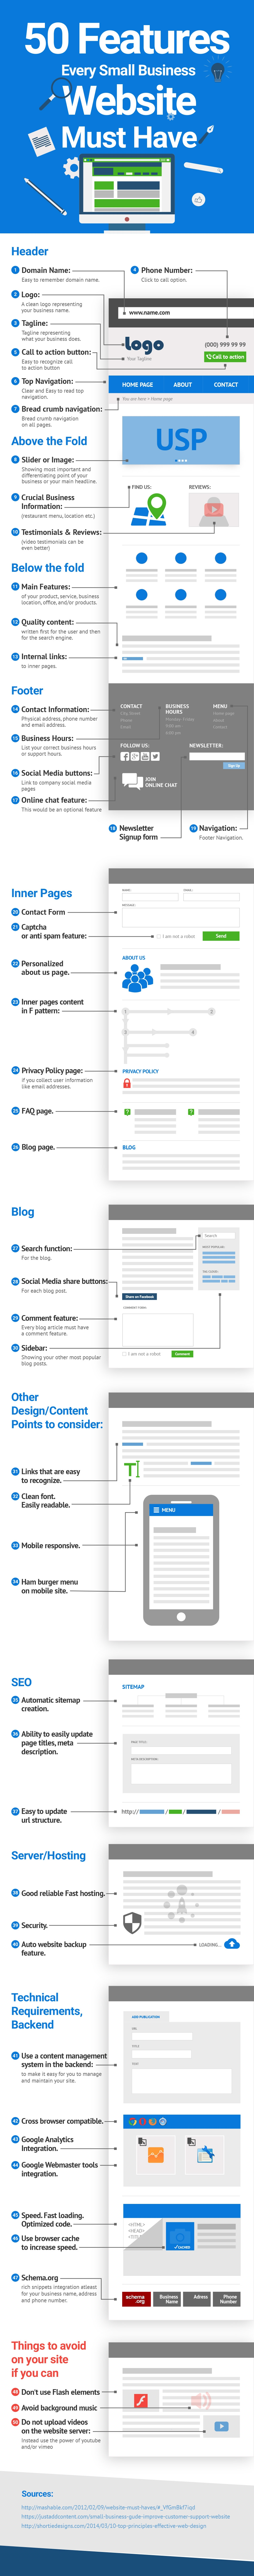 website-feature-must-have-infographic